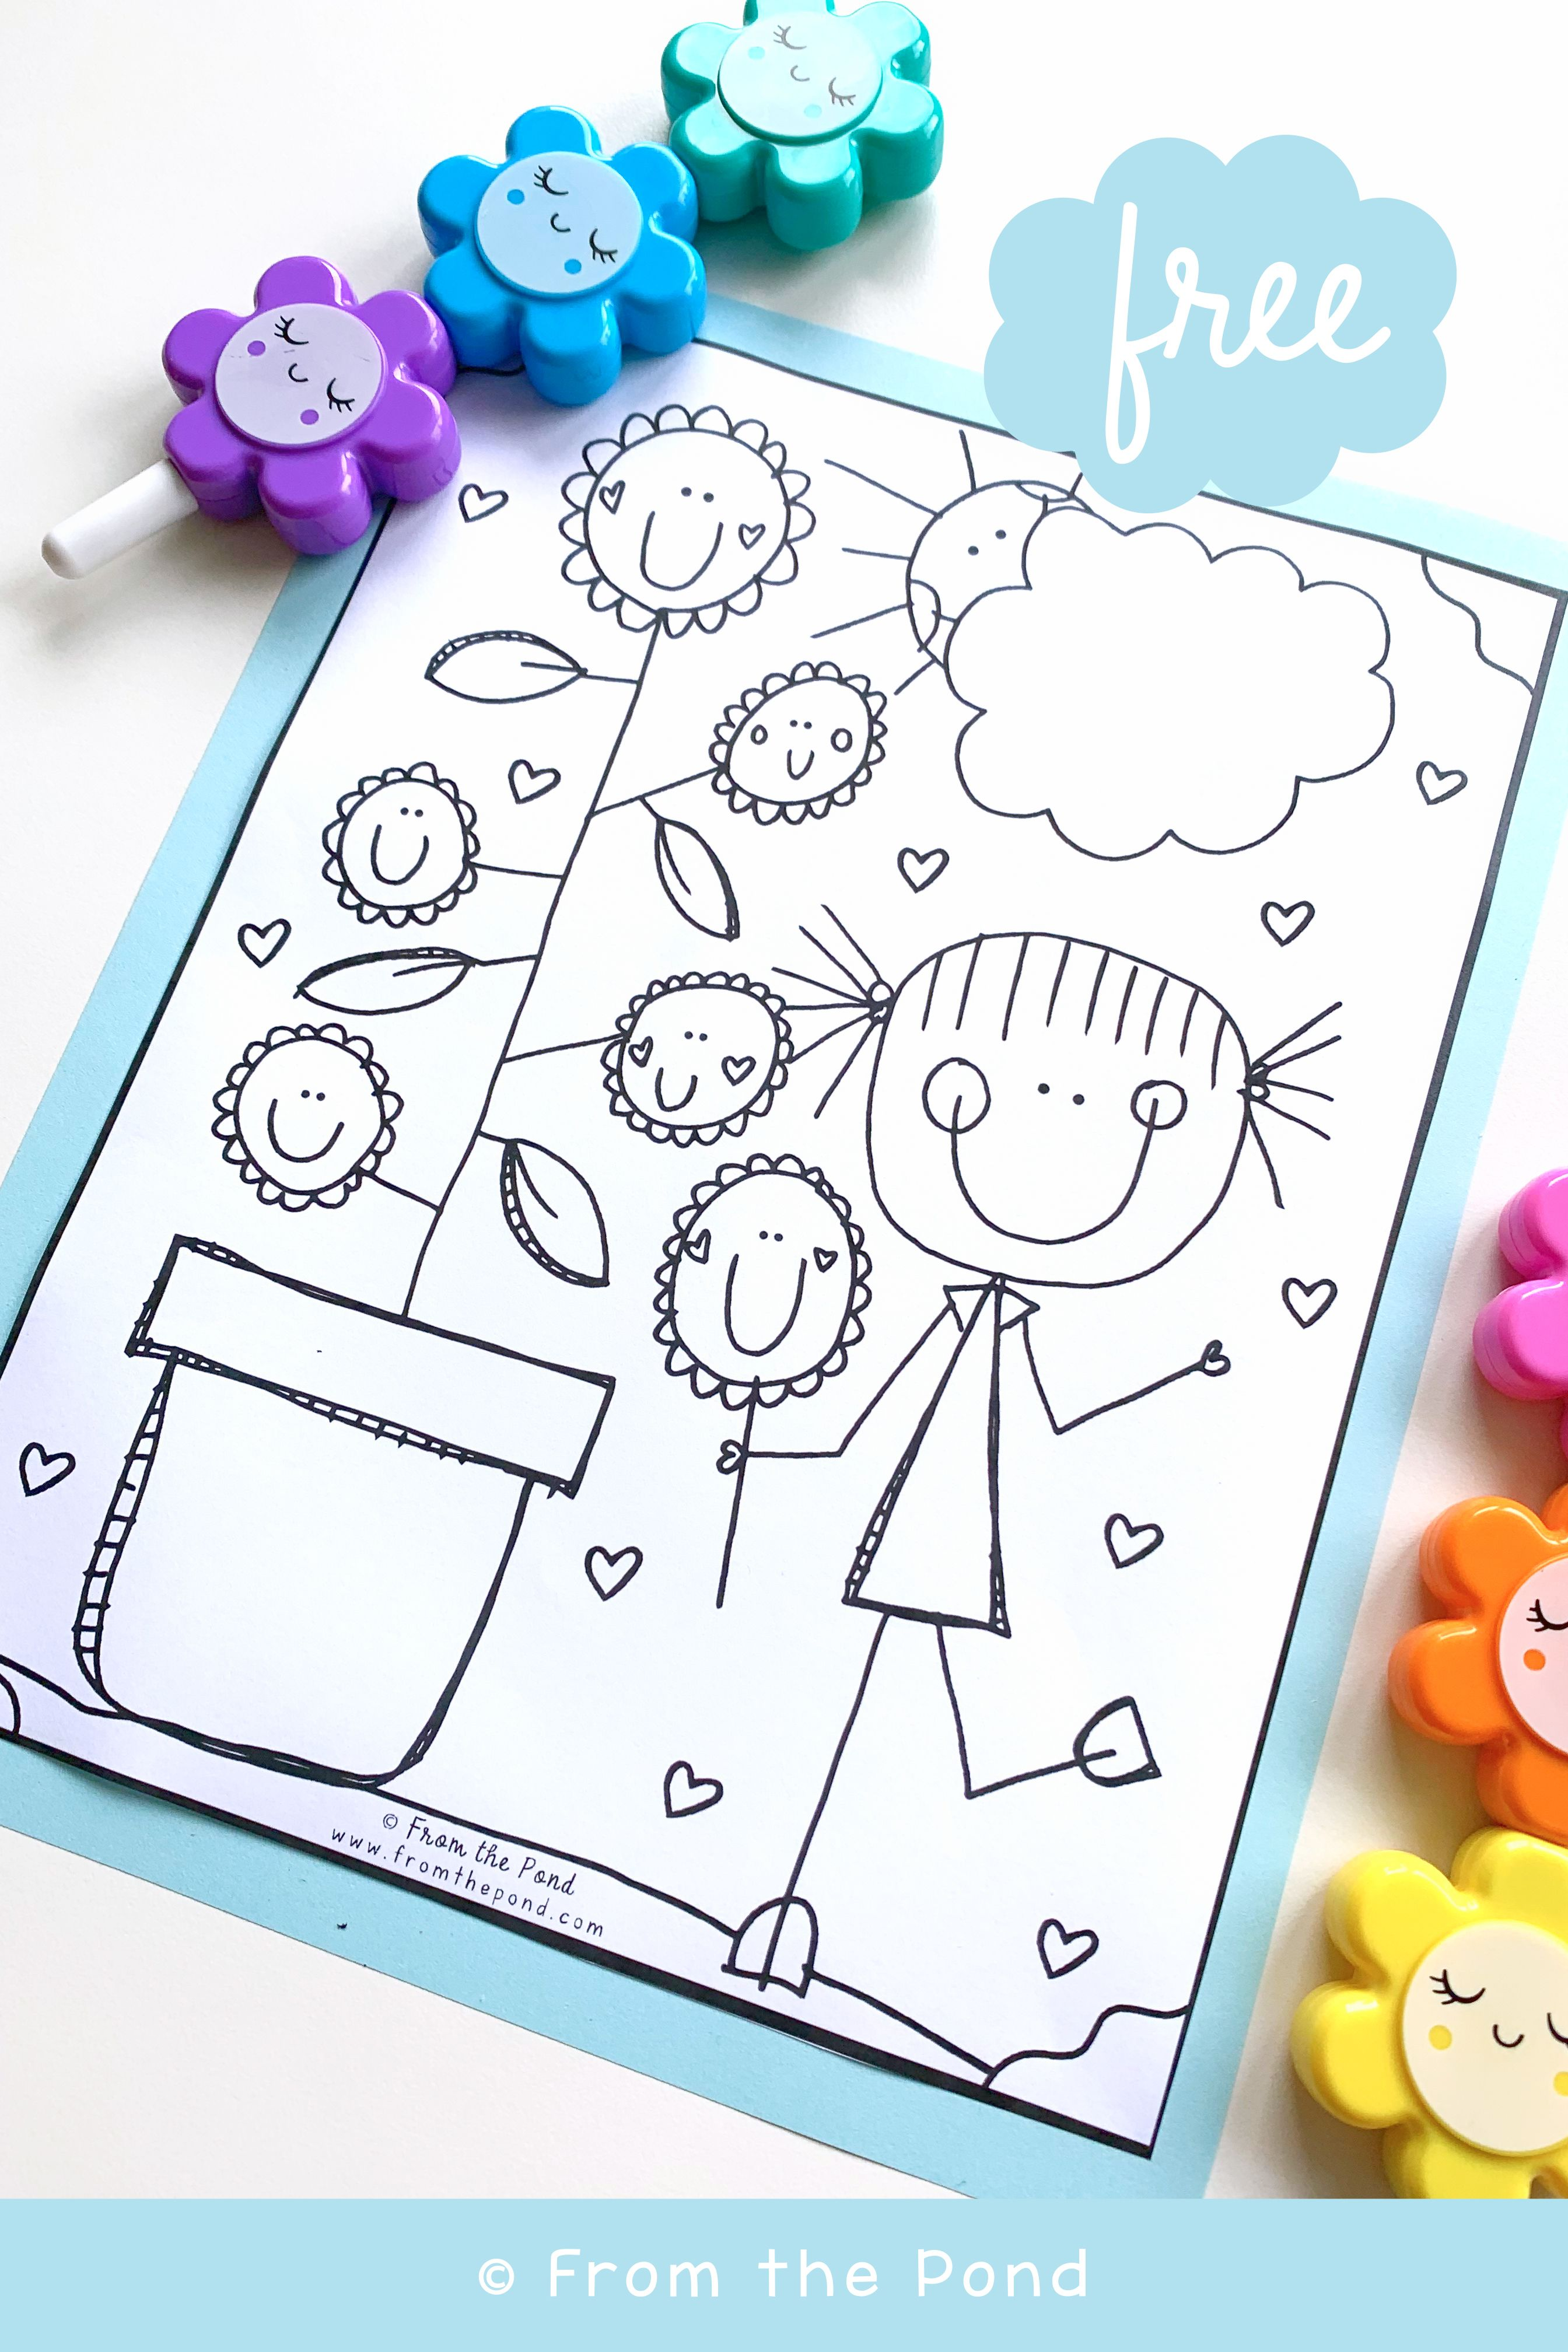 Free Flower Coloring Page Flower Coloring Pages Picking Flowers Coloring Pages [ 4032 x 2688 Pixel ]